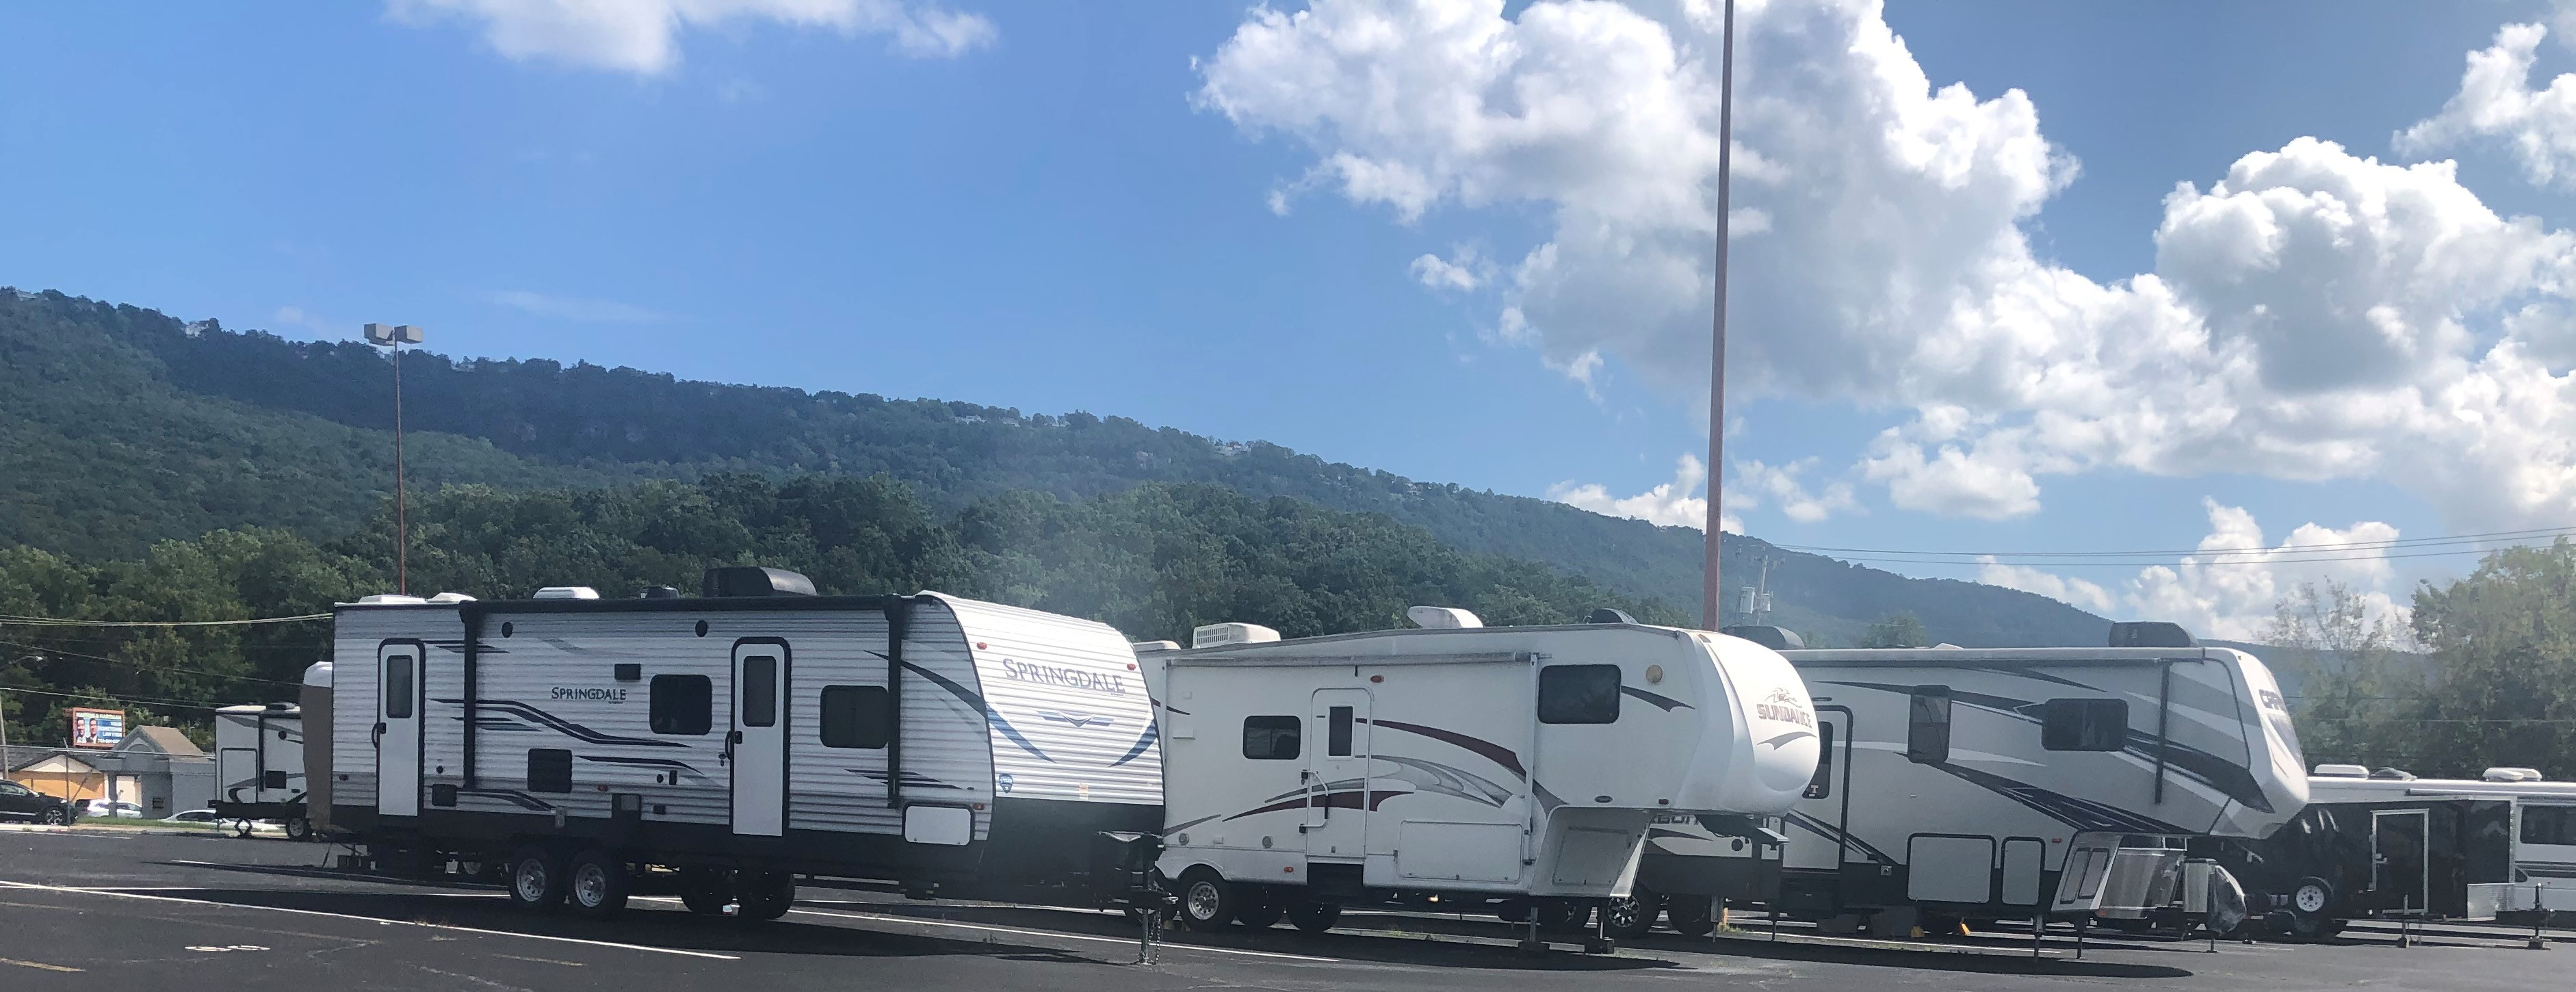 RV Parking in Chattanooga, GA